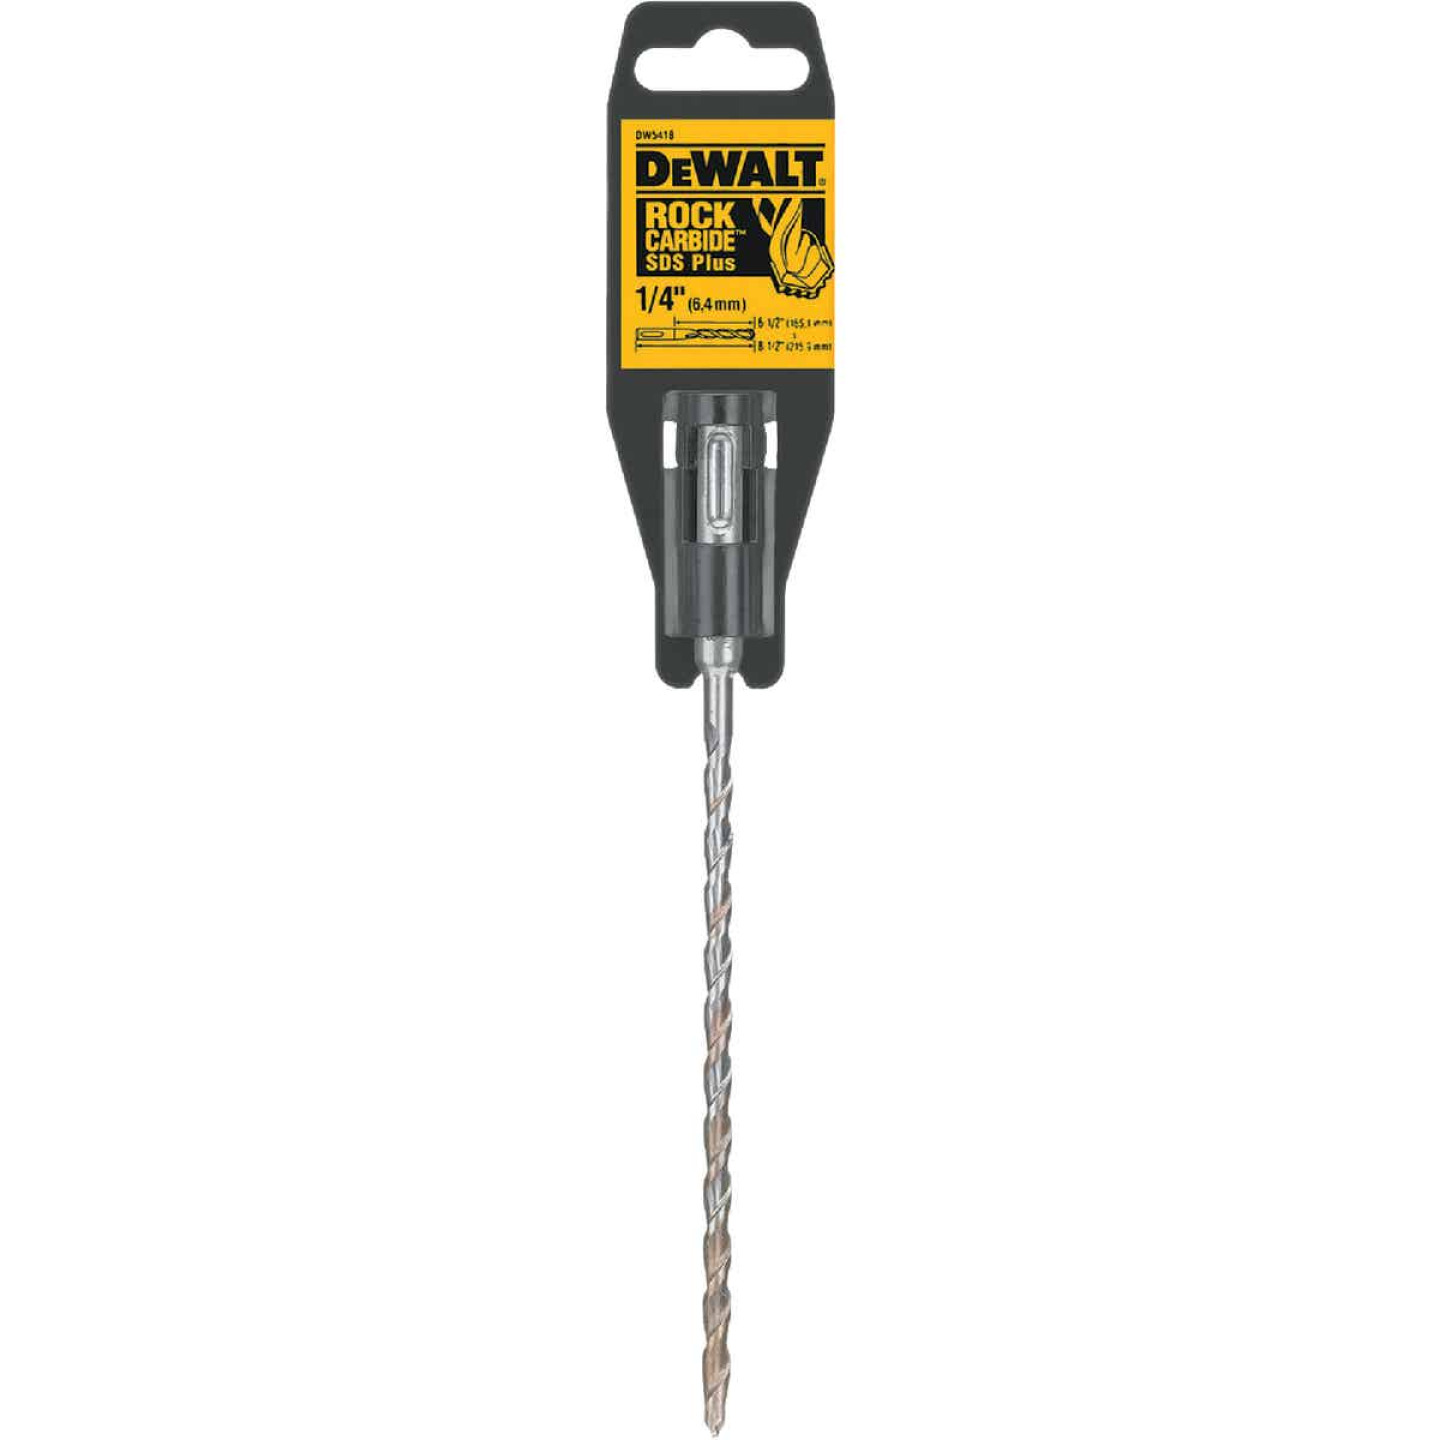 DeWalt SDS-Plus 1/4 In. x 8-1/2 In. 2-Cutter Rotary Hammer Drill Bit Image 1